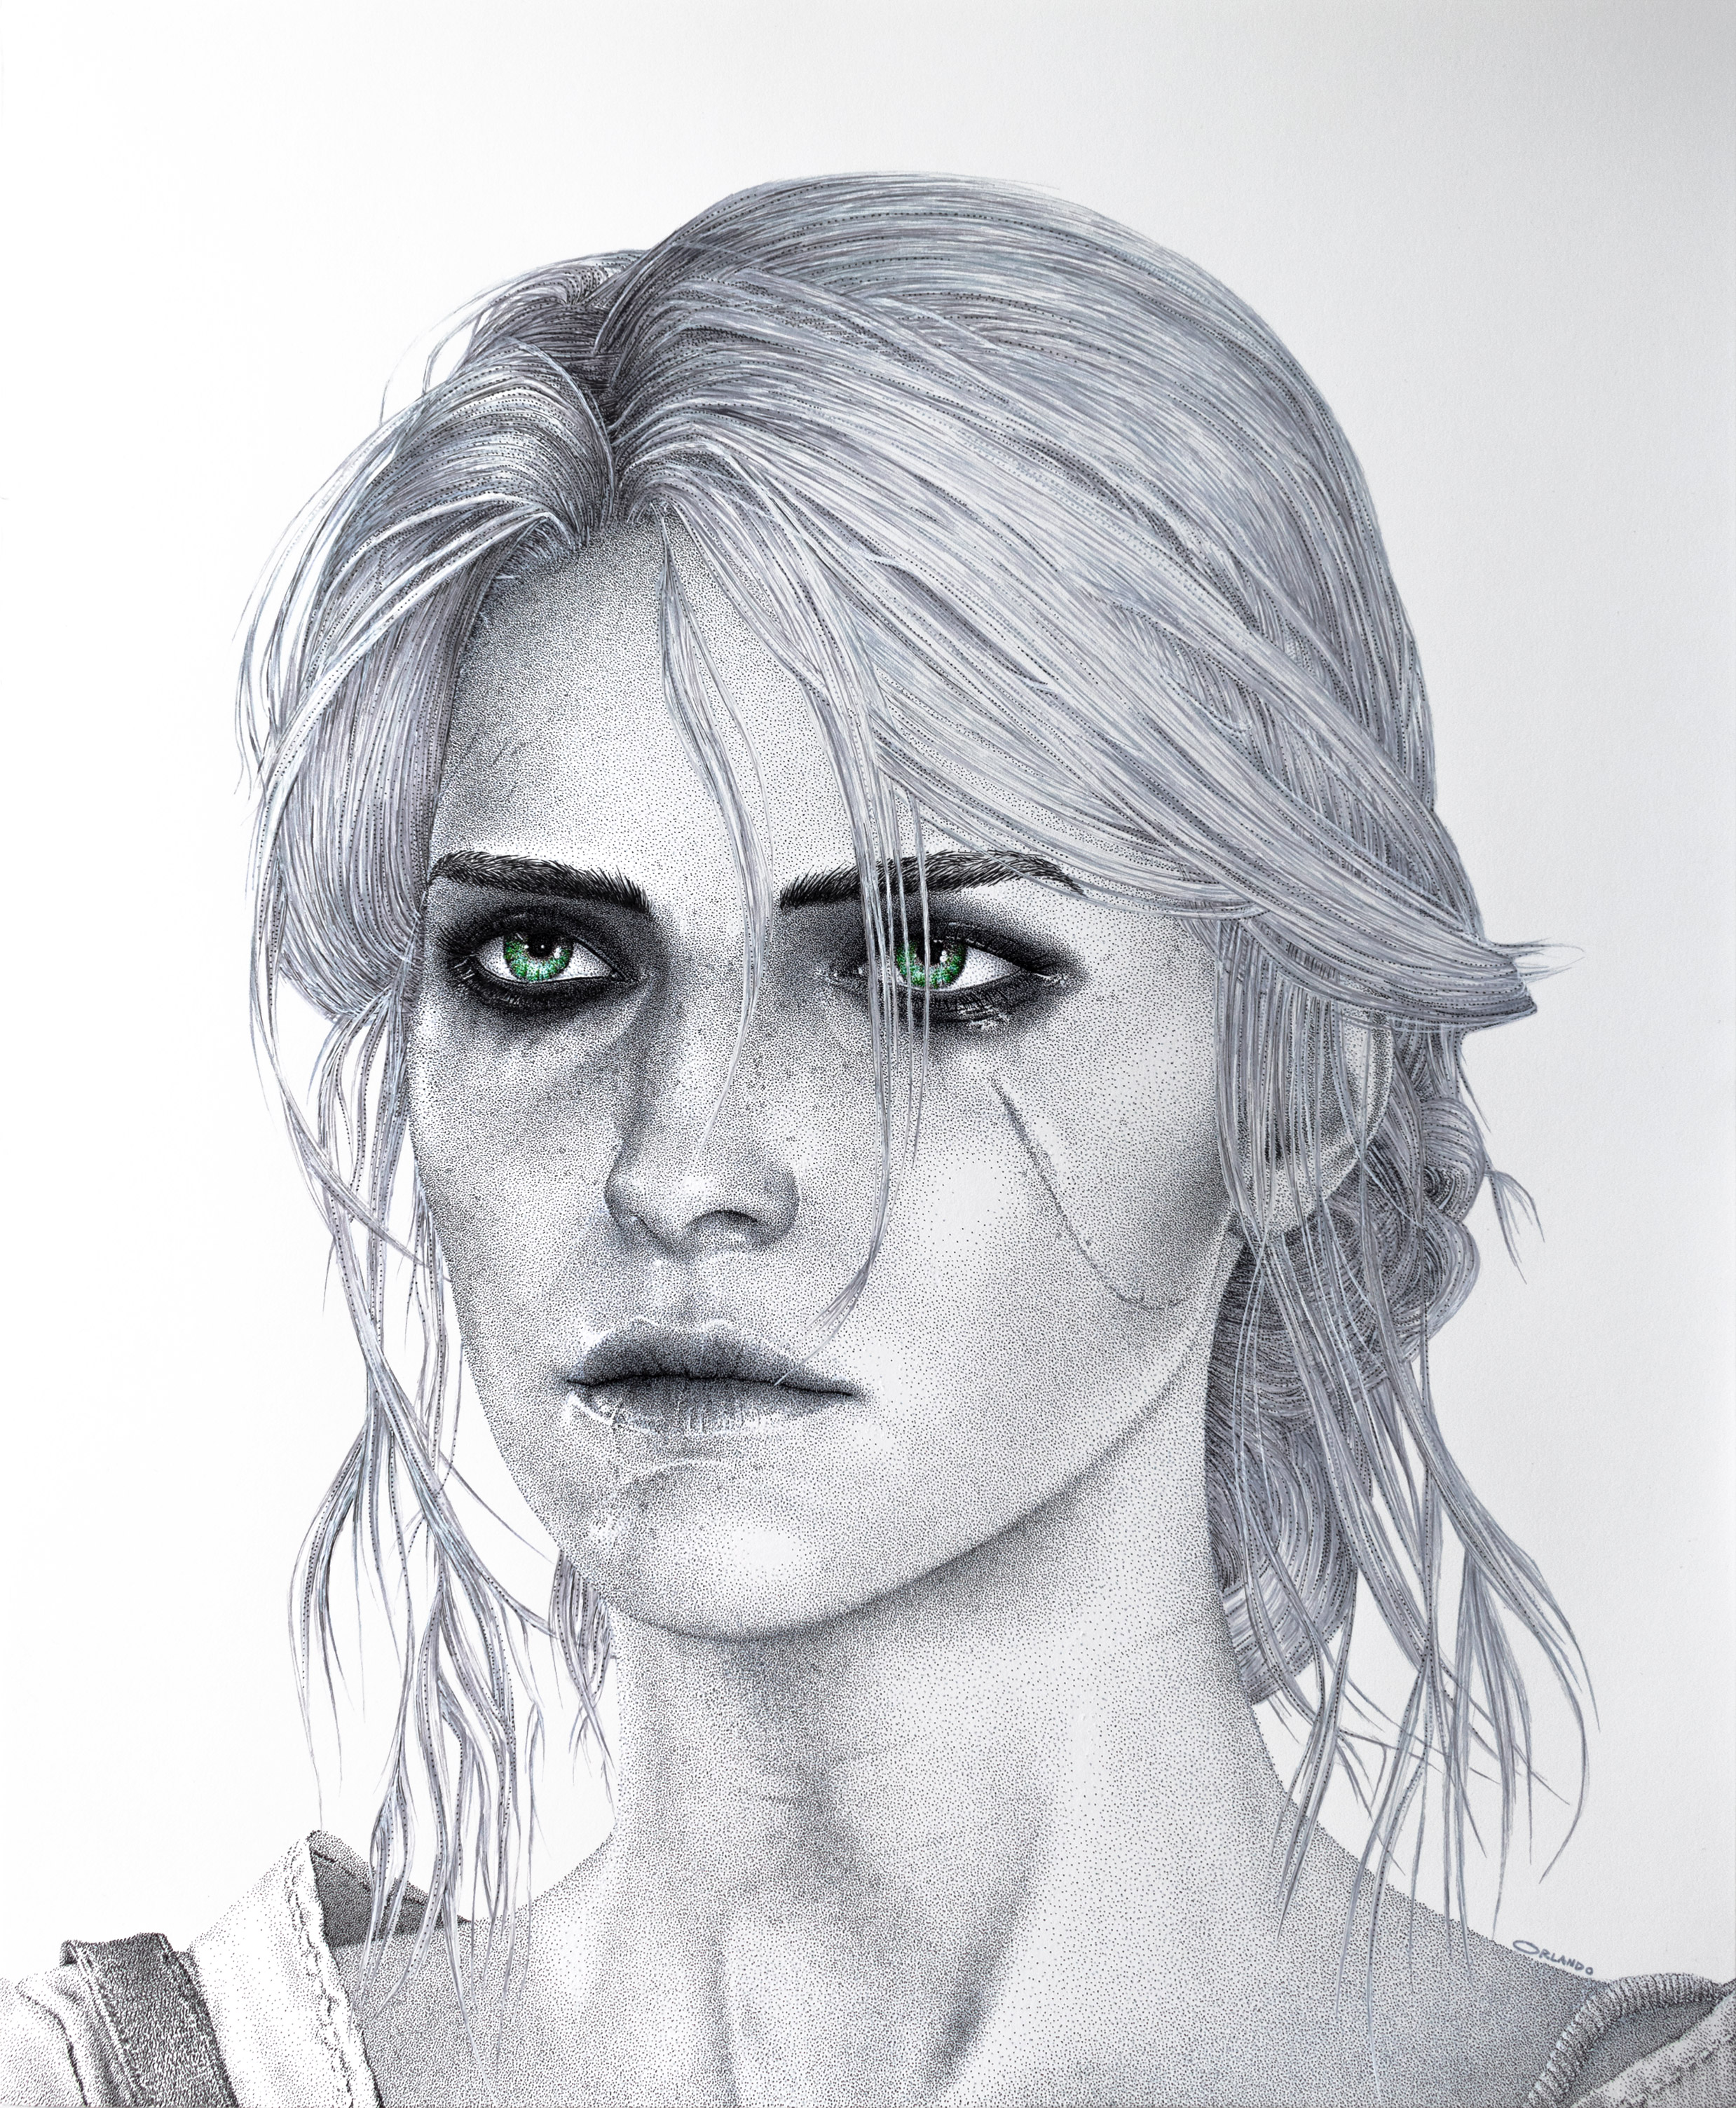 Ciri pen drawing by Keith Orlando